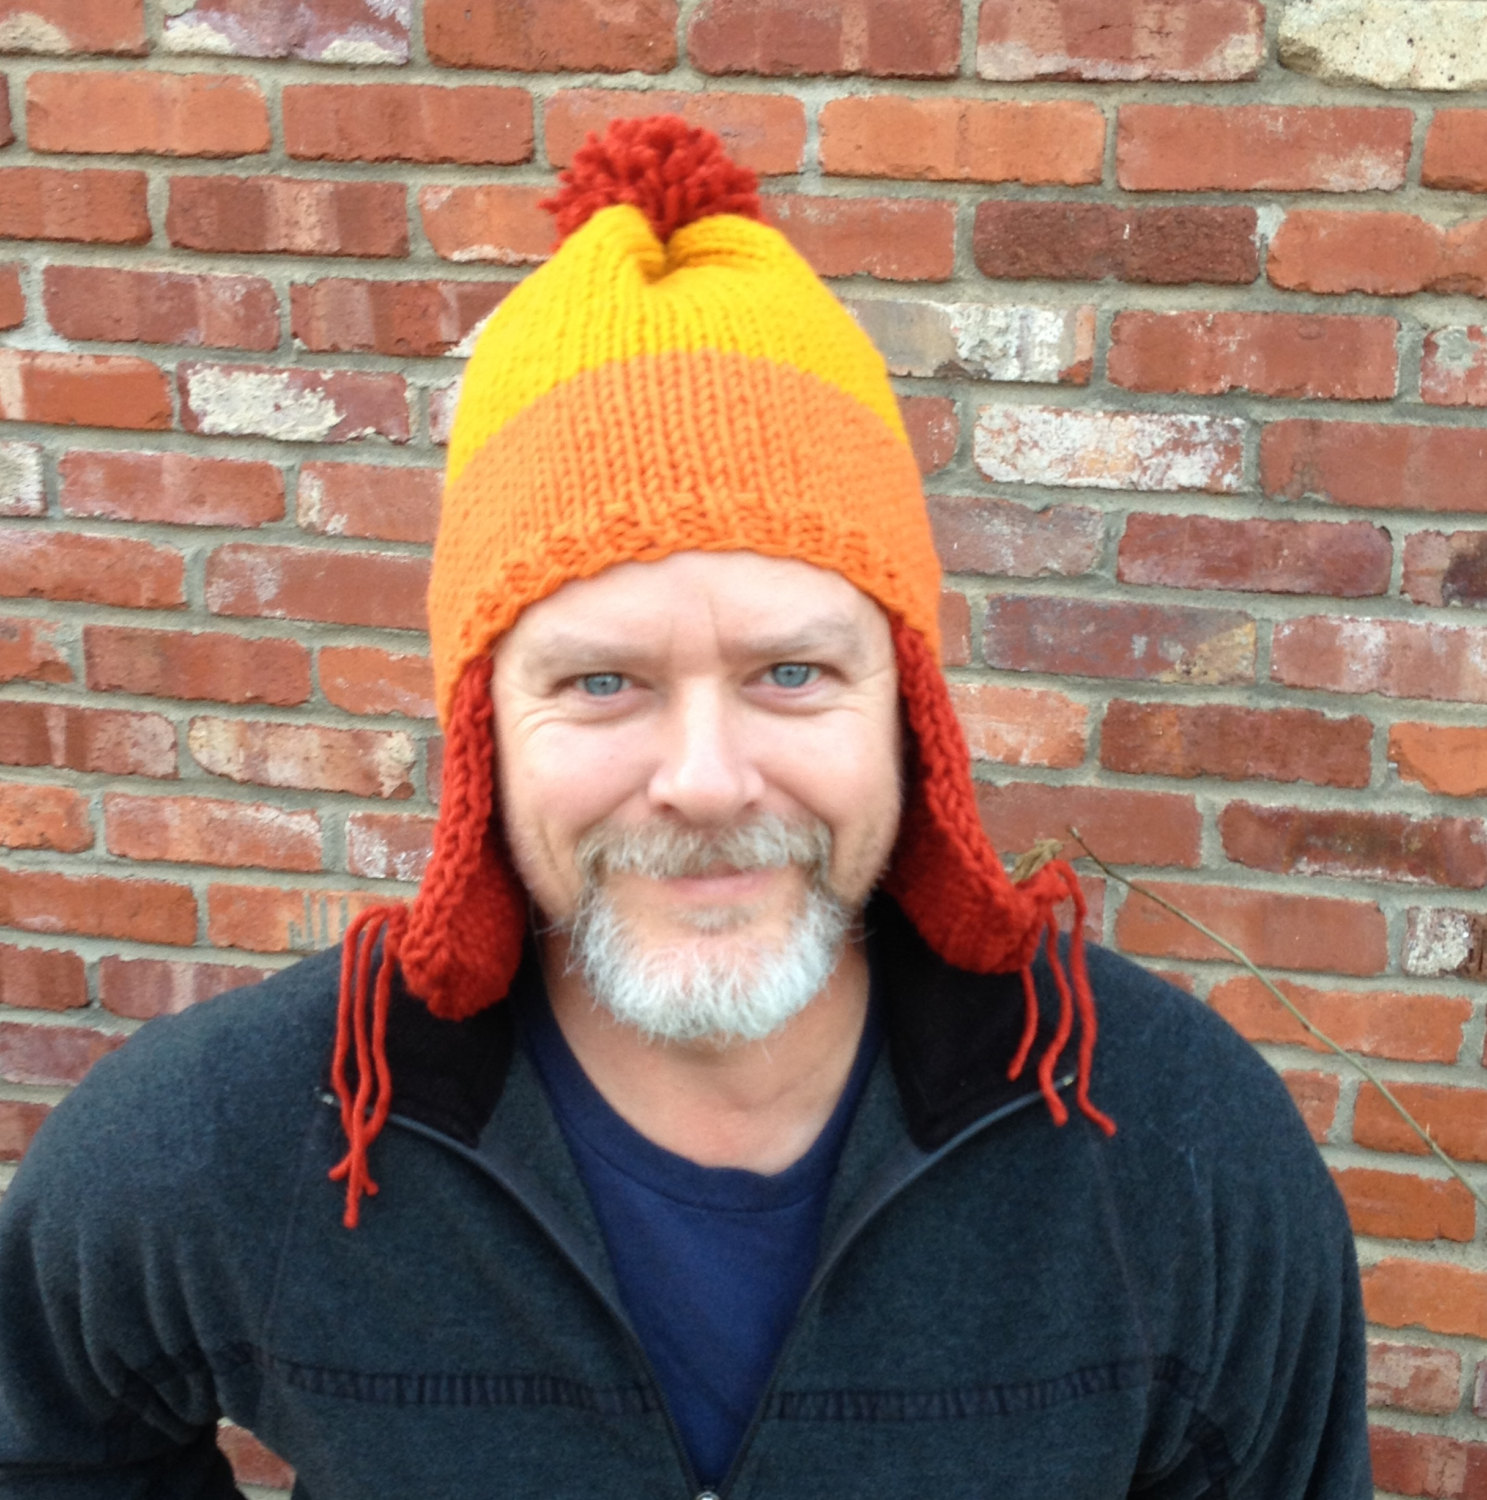 21d9c90a 16 Men's Knit Hat Patterns - The Funky Stitch